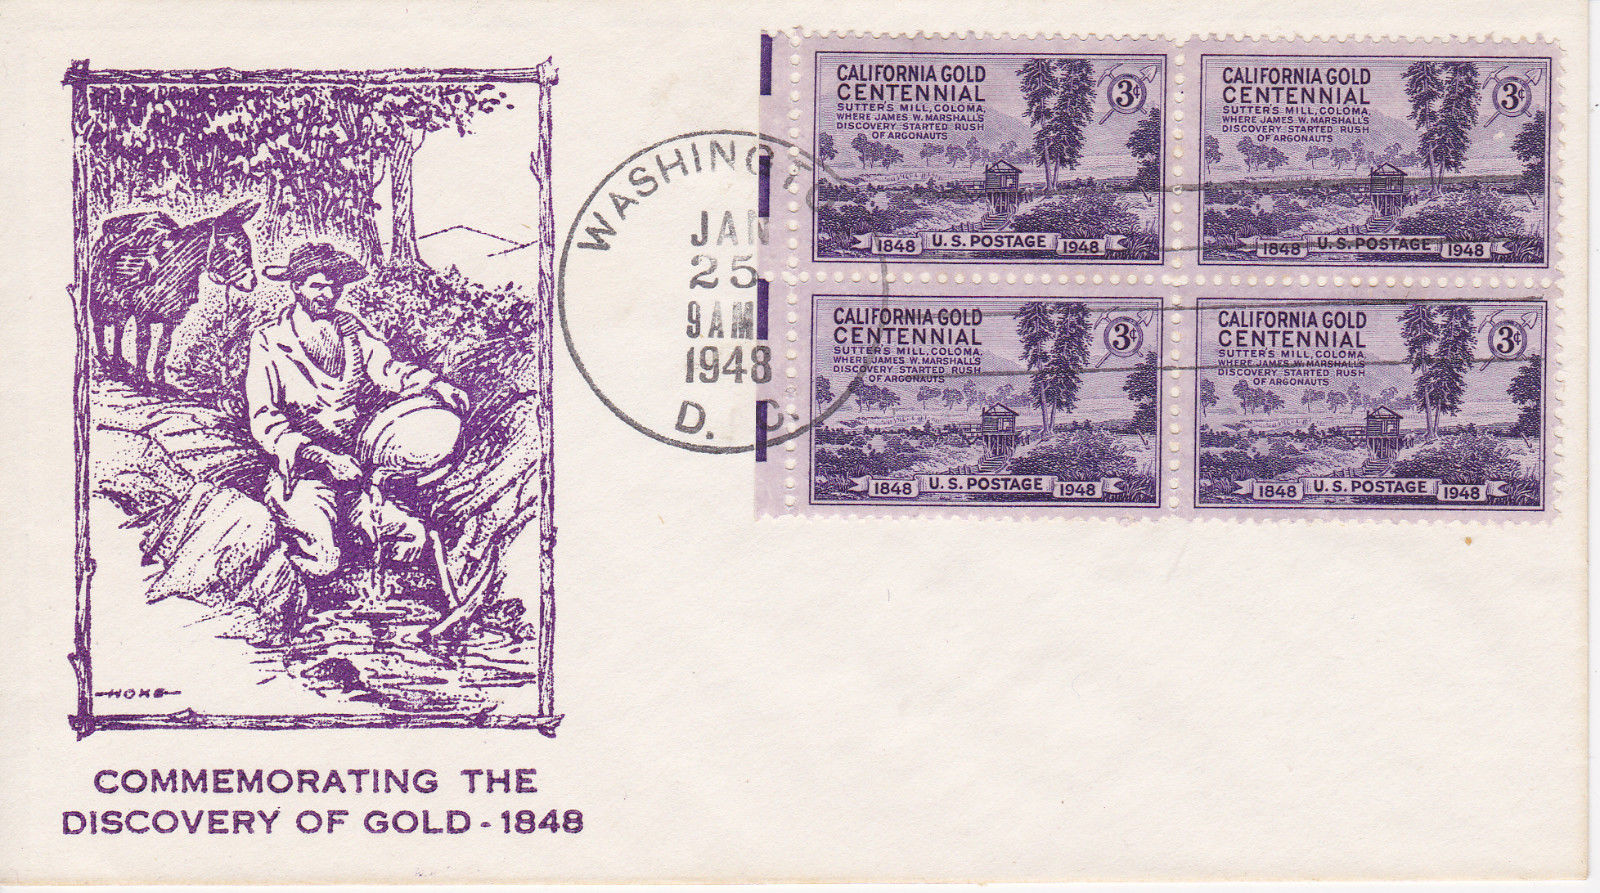 United States - Scott #954 (1948) first day cover